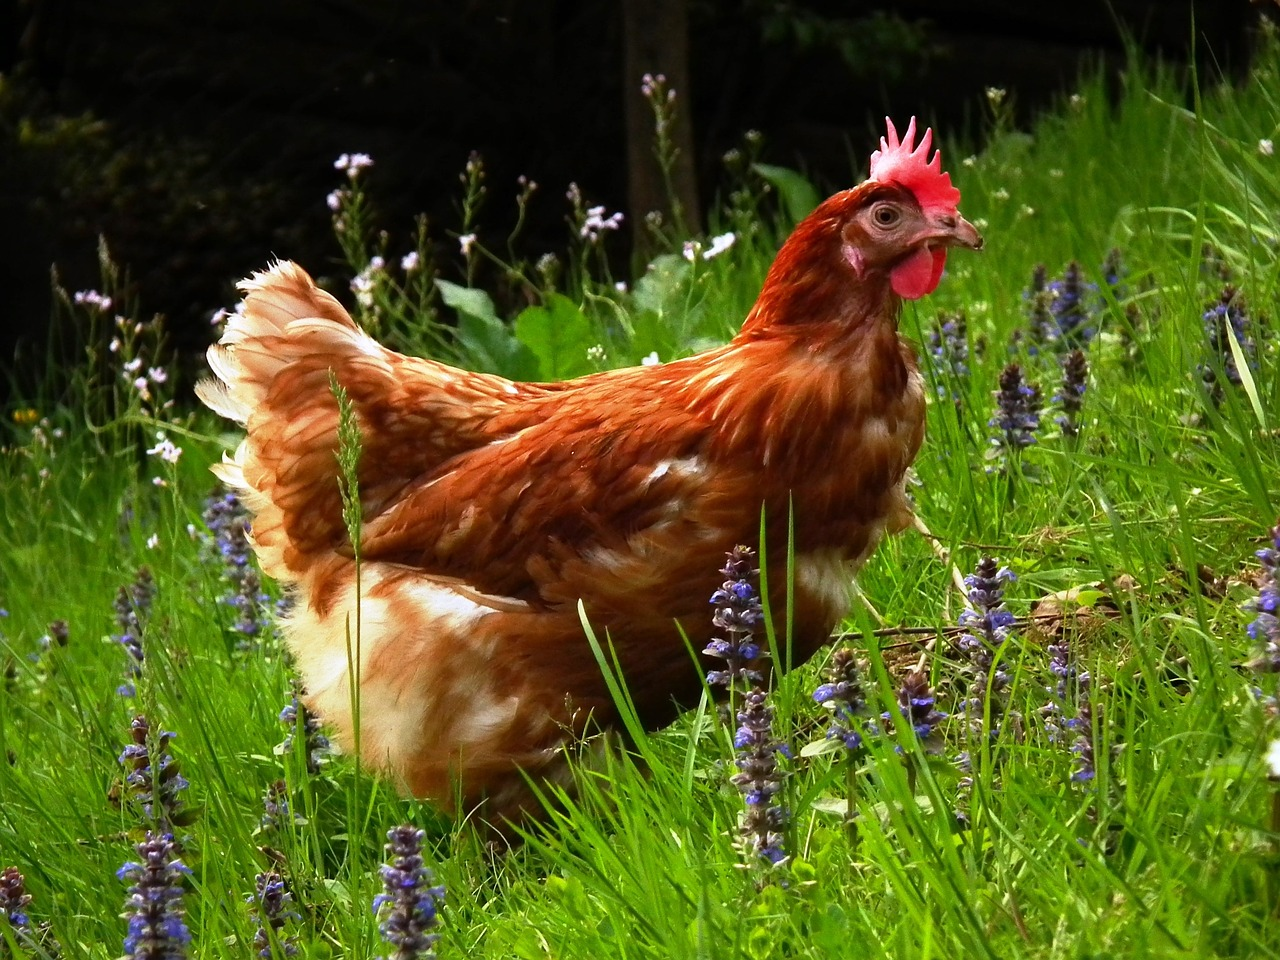 using herbs as chicken fodder is also an idea